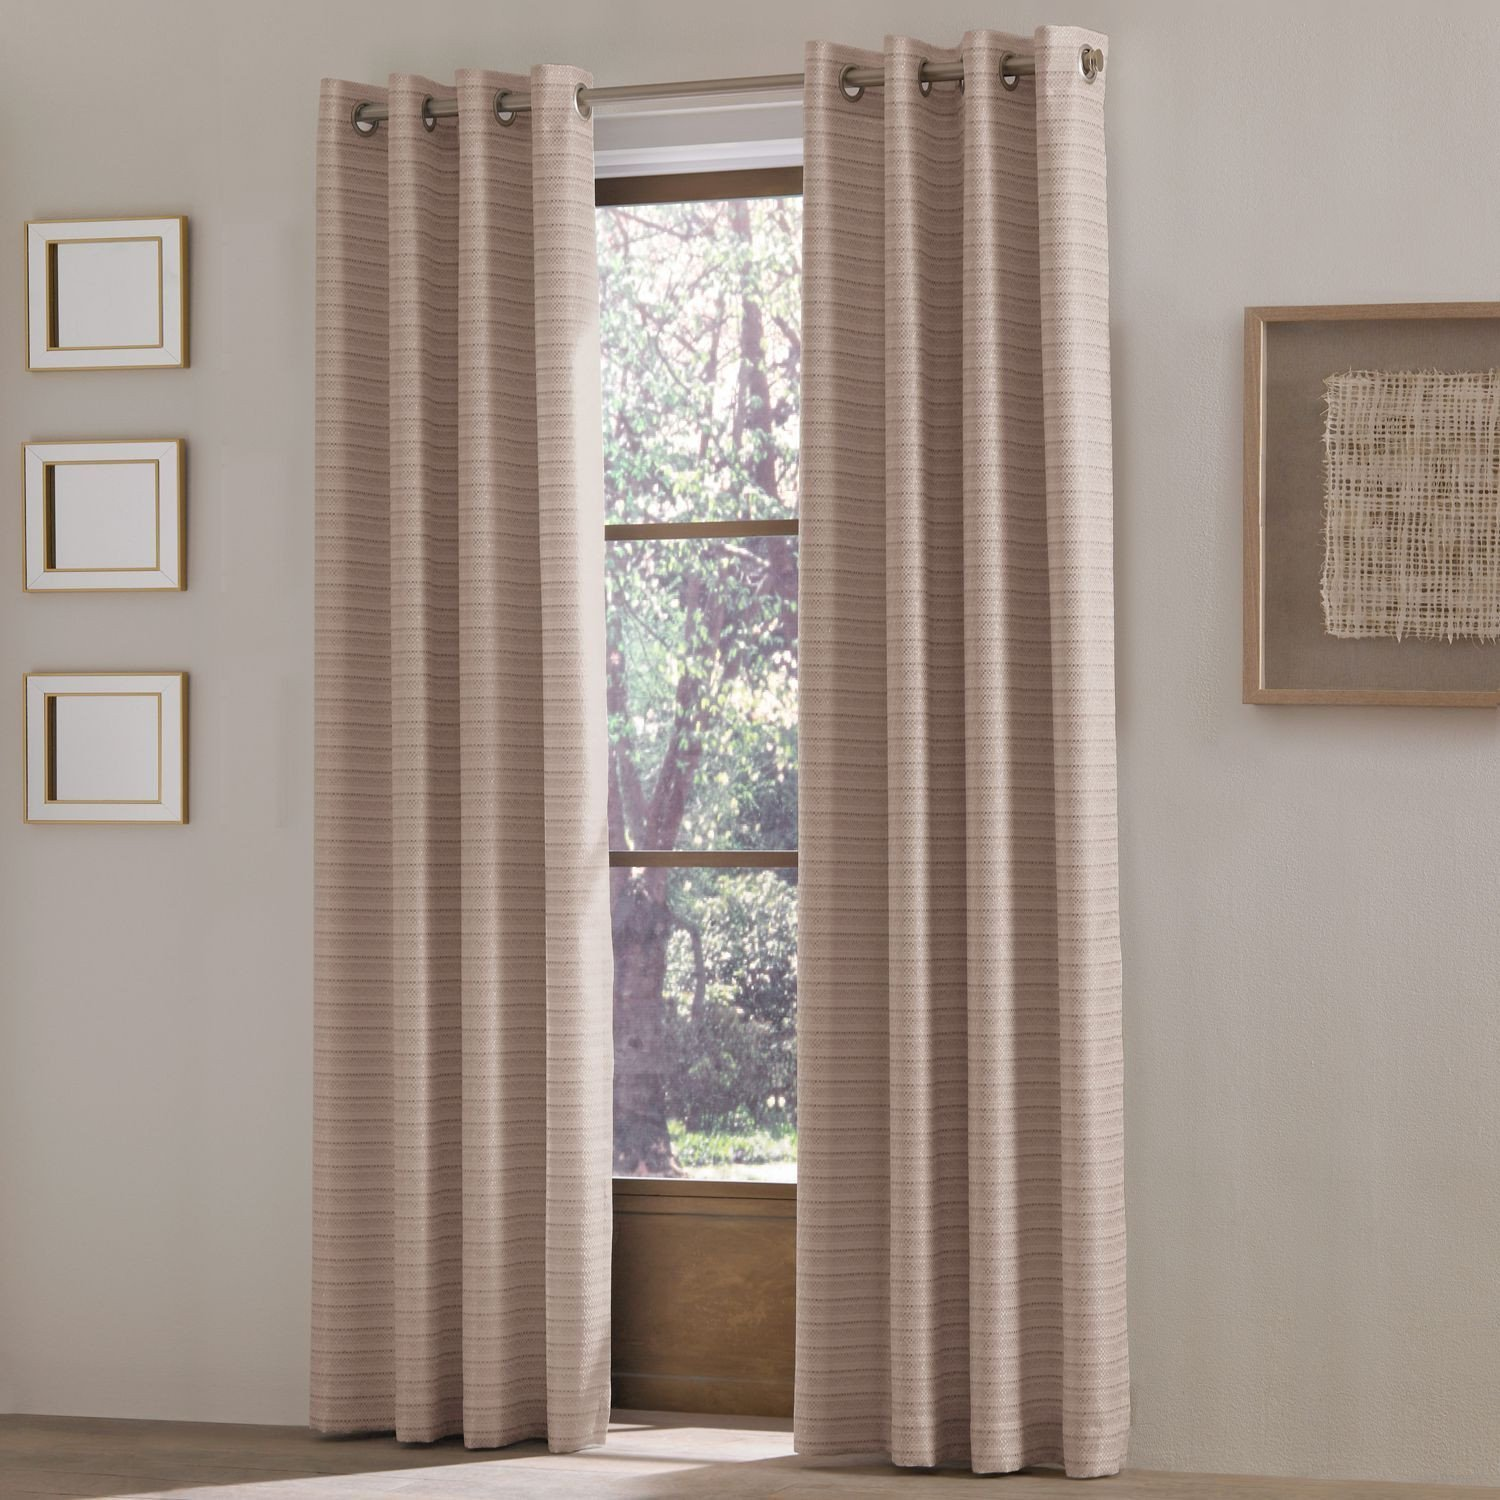 "Curtains for Bedroom Windows with Designs Beautiful Eleanore Blush 84"" Grommet Curtain"